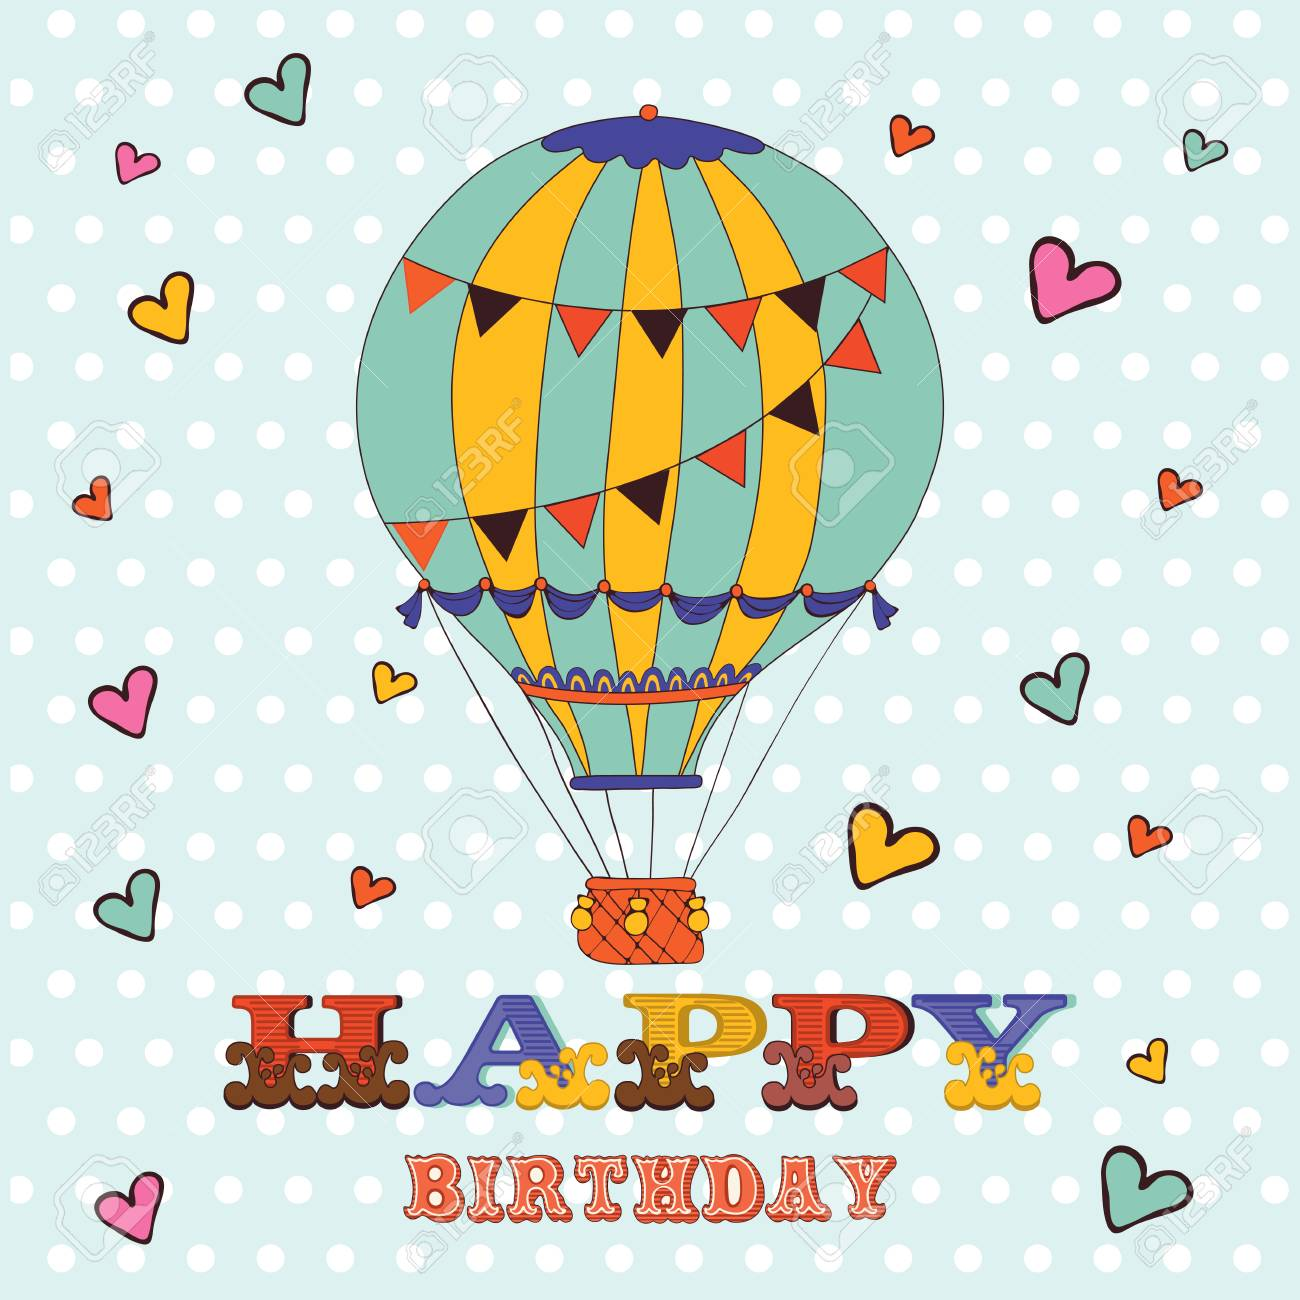 Happy birthday card with hot air balloon and hearts illustration happy birthday card with hot air balloon and hearts illustration in vector format stock vector bookmarktalkfo Image collections